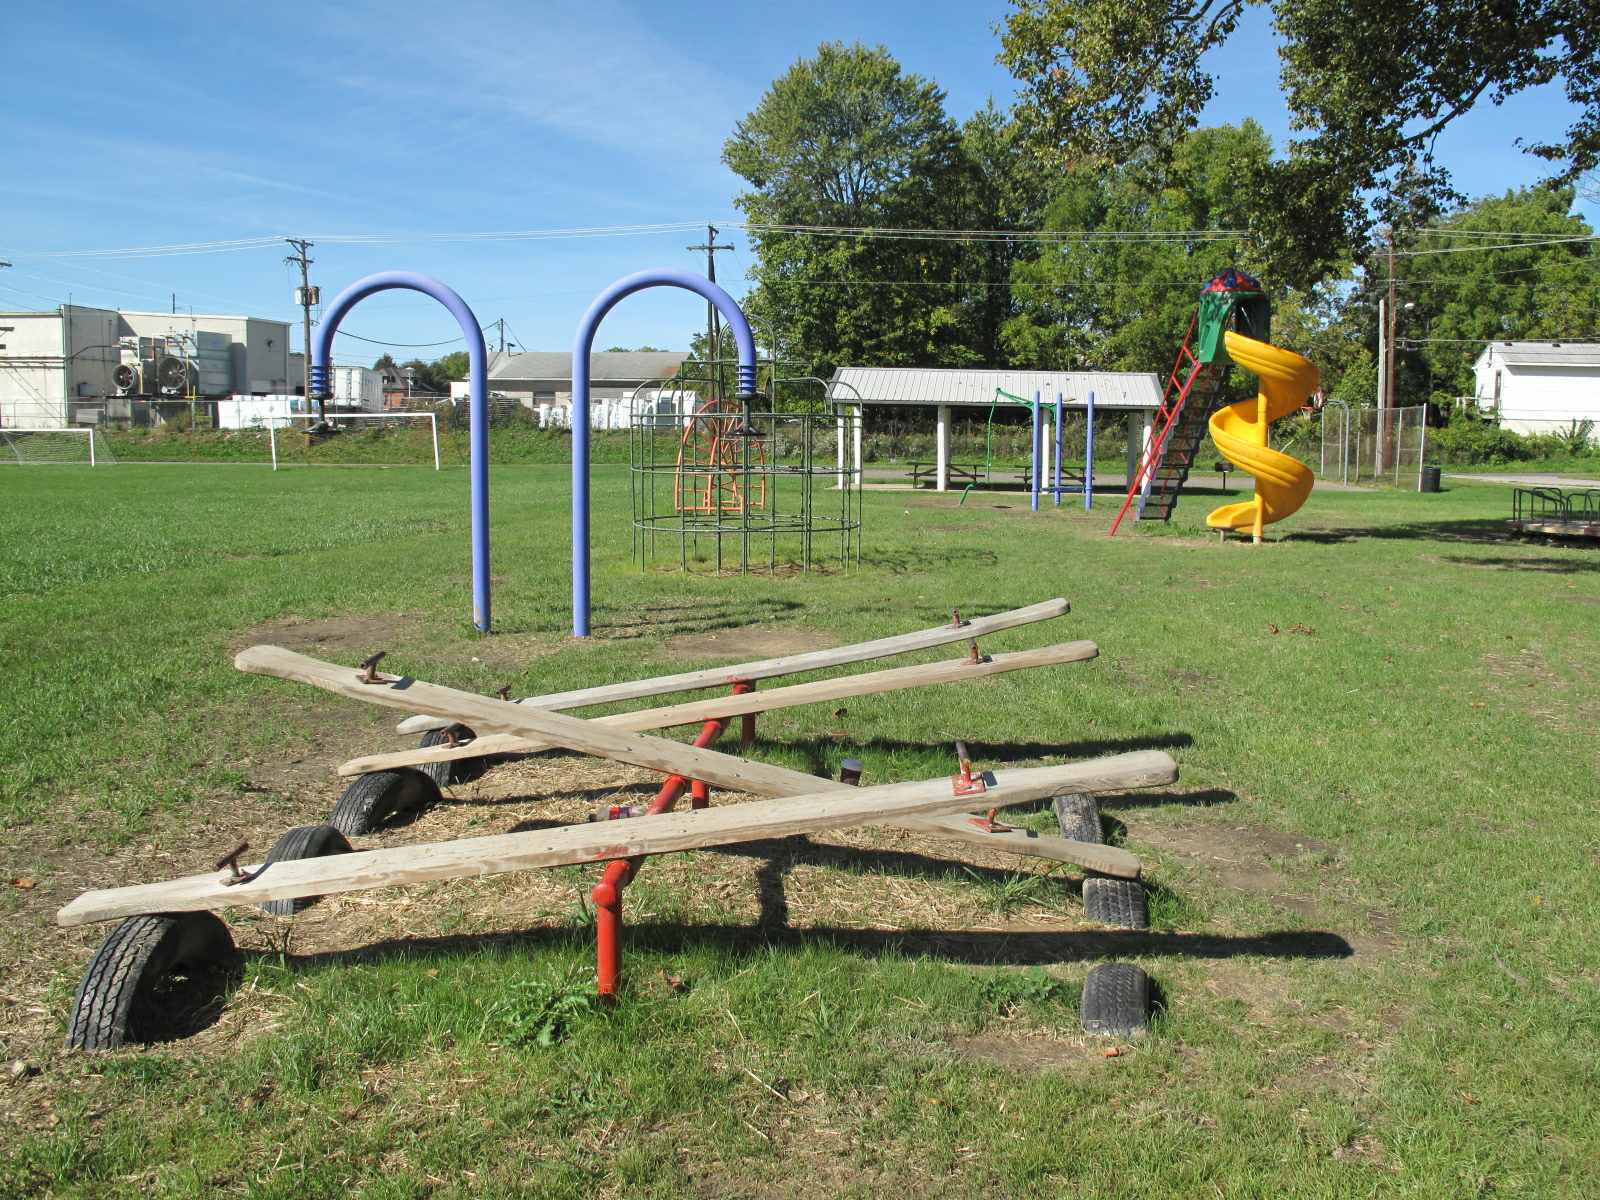 Playground at Bucyrus Harmon Park